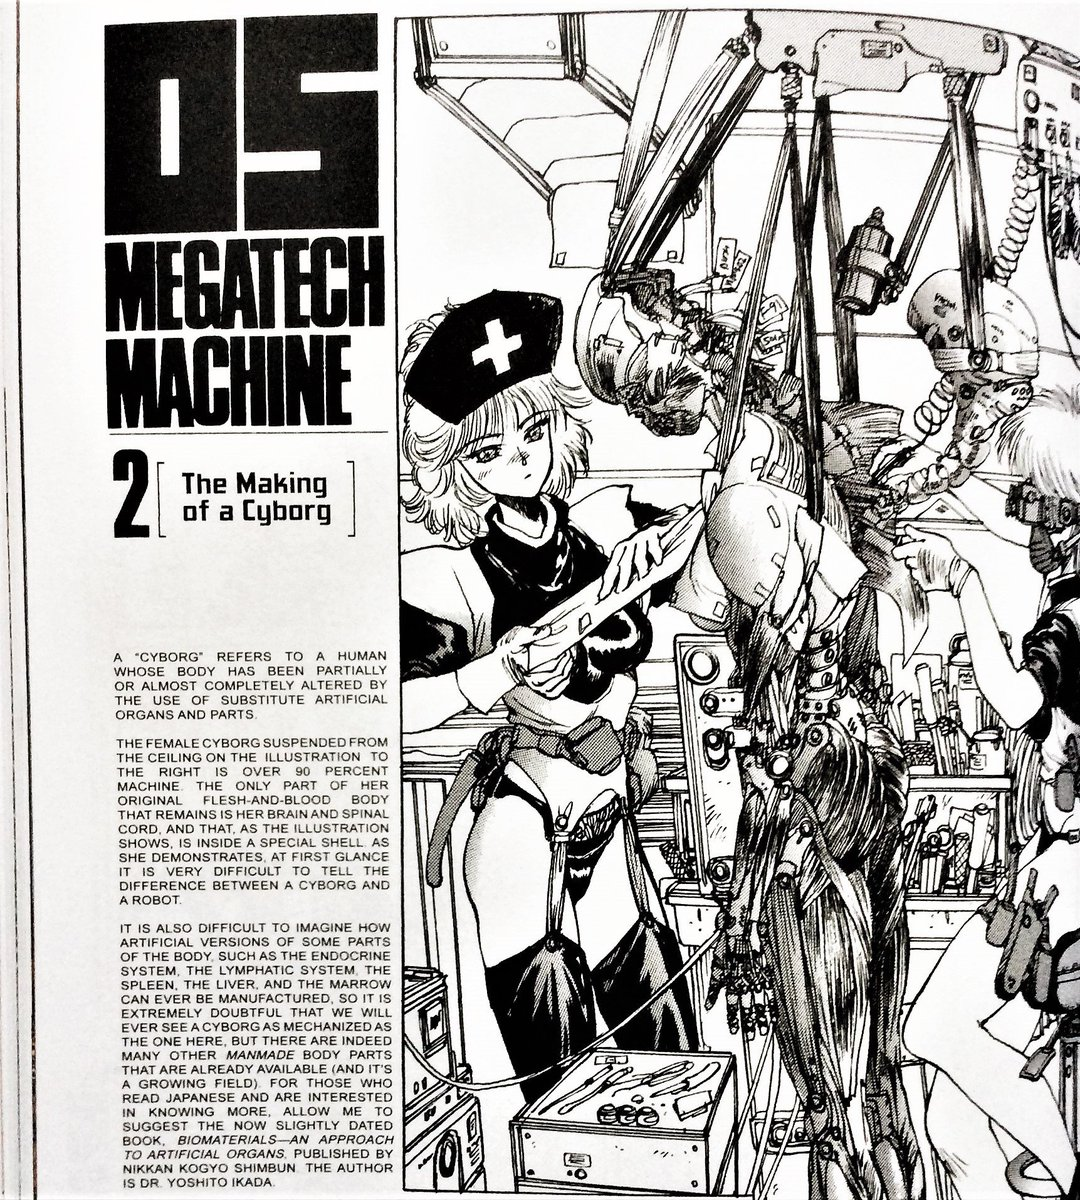 Mike A Twitter Fun Fact Shirow Masamune S Ghost In The Shell Manga Has A Chapter Called The 05 Megatech Machine Where He Breaks Down The Anatomy Making Of A Cyborg Mamoru